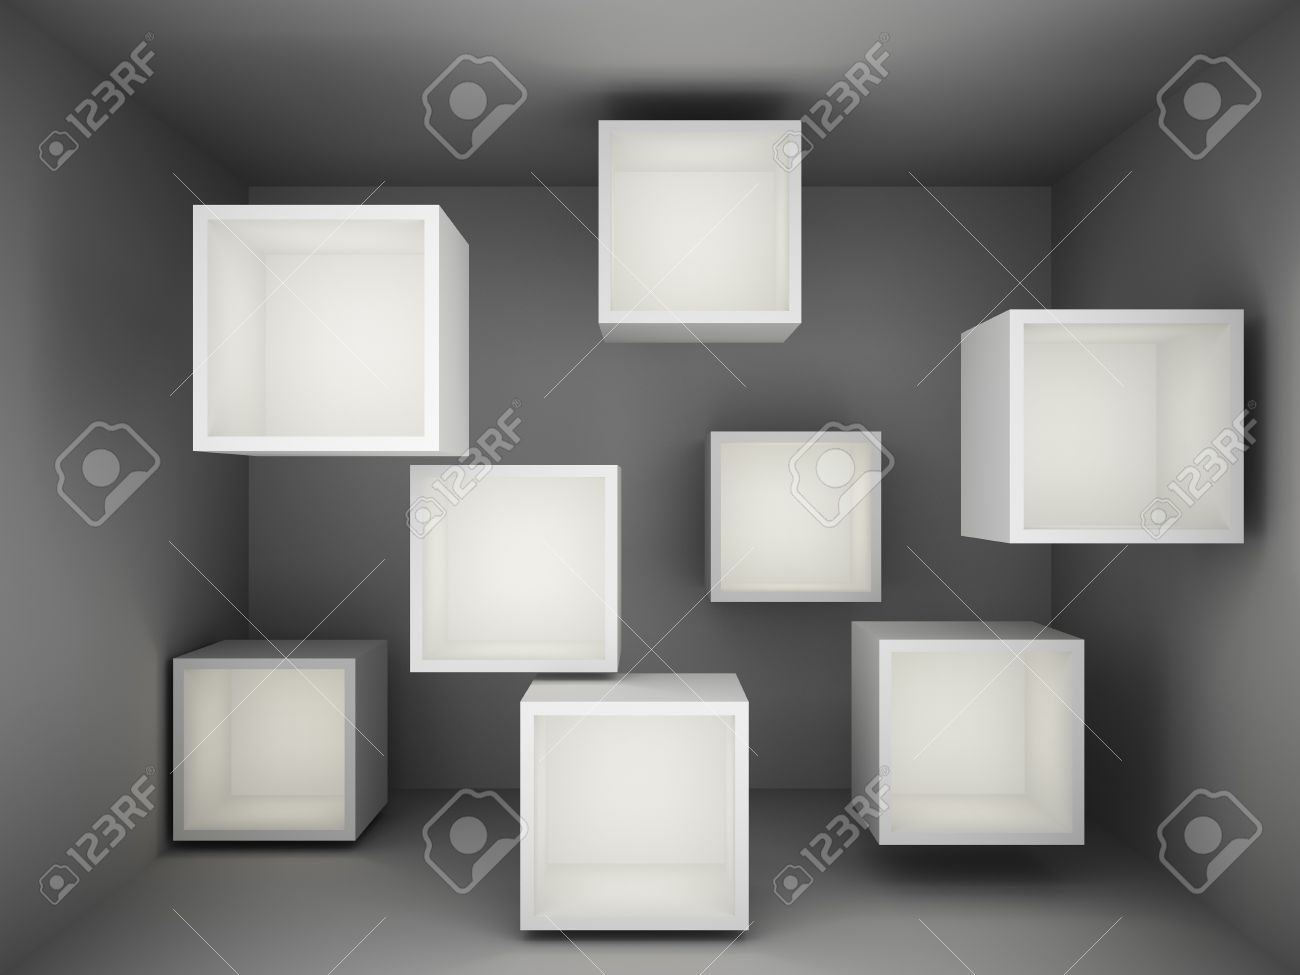 Abstract empty showcase with light Stock Photo - 18708235